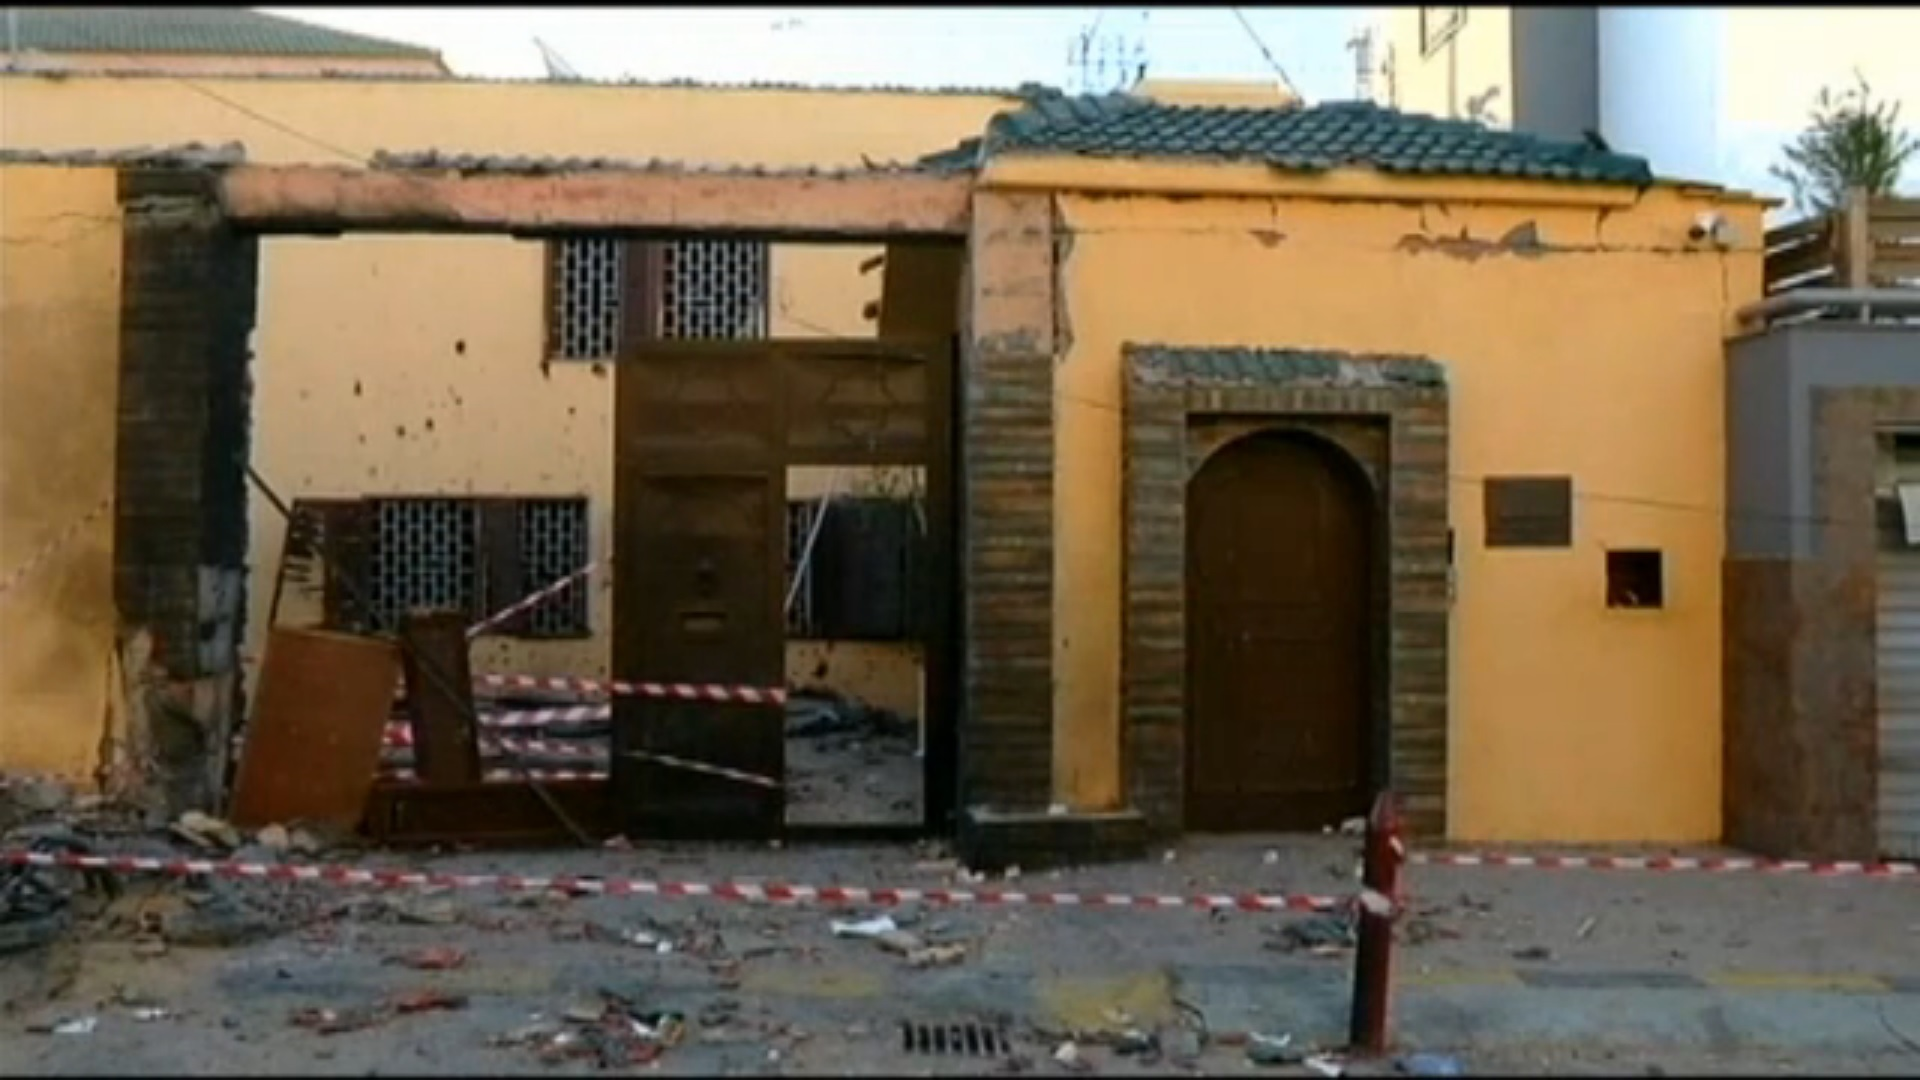 Moroccan Embassy in Tripoli after militants bombed the gates. Photo Credit: NBC